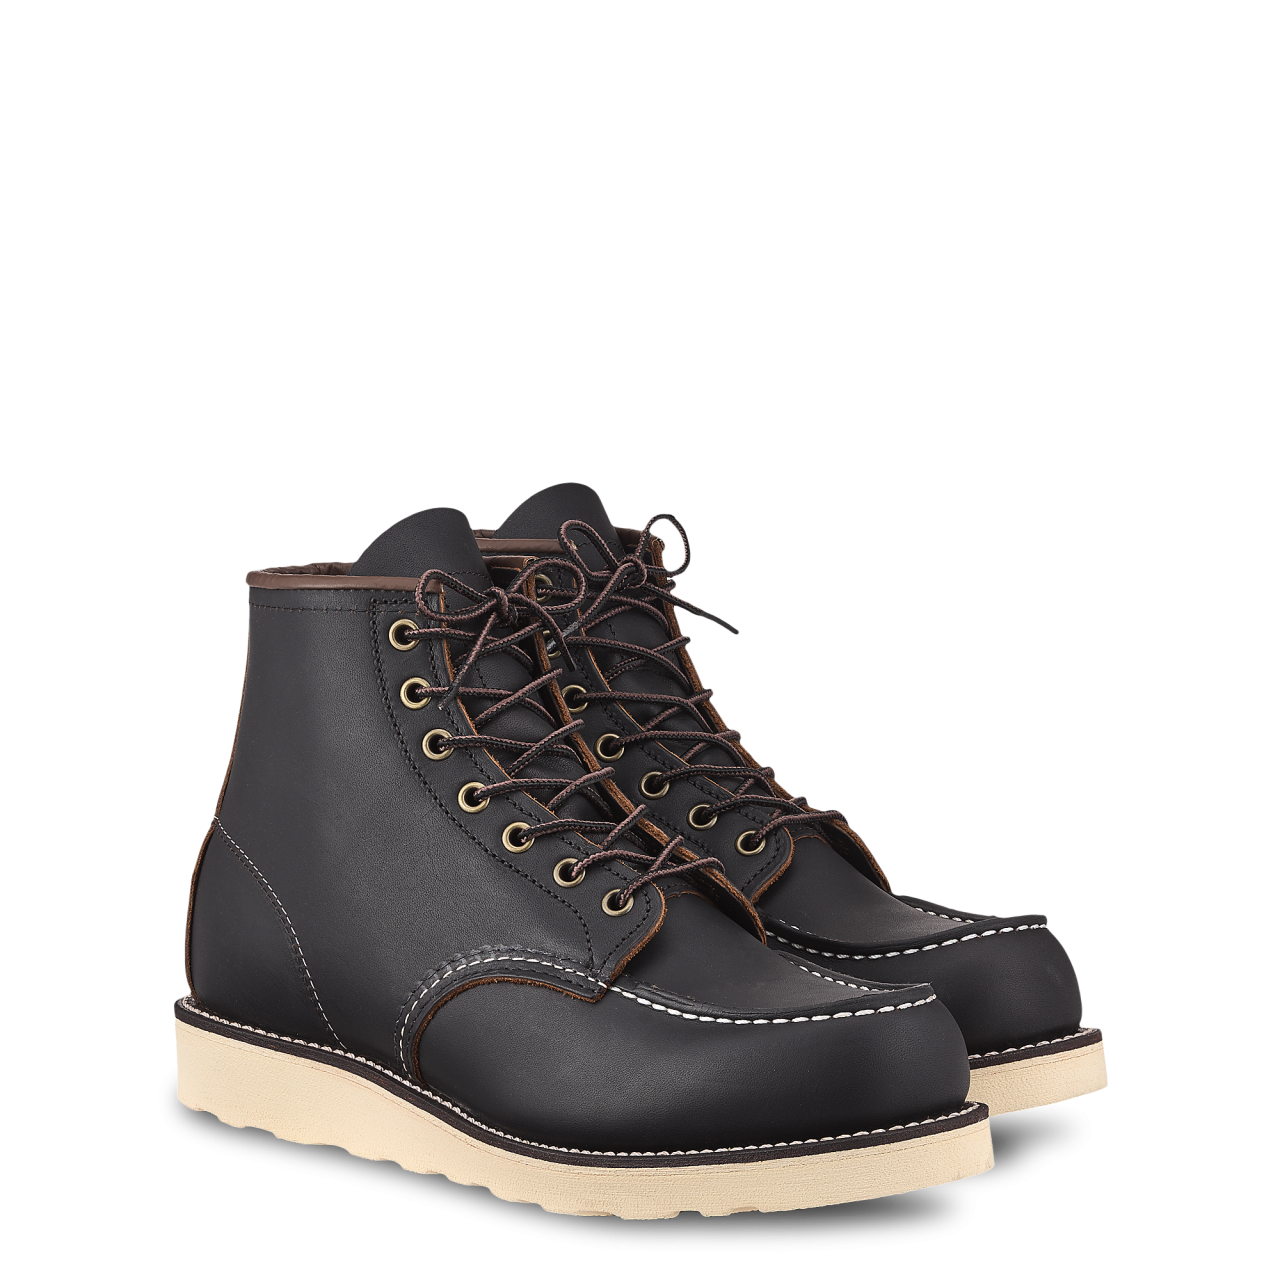 Red Wing 8849 Moc Toe